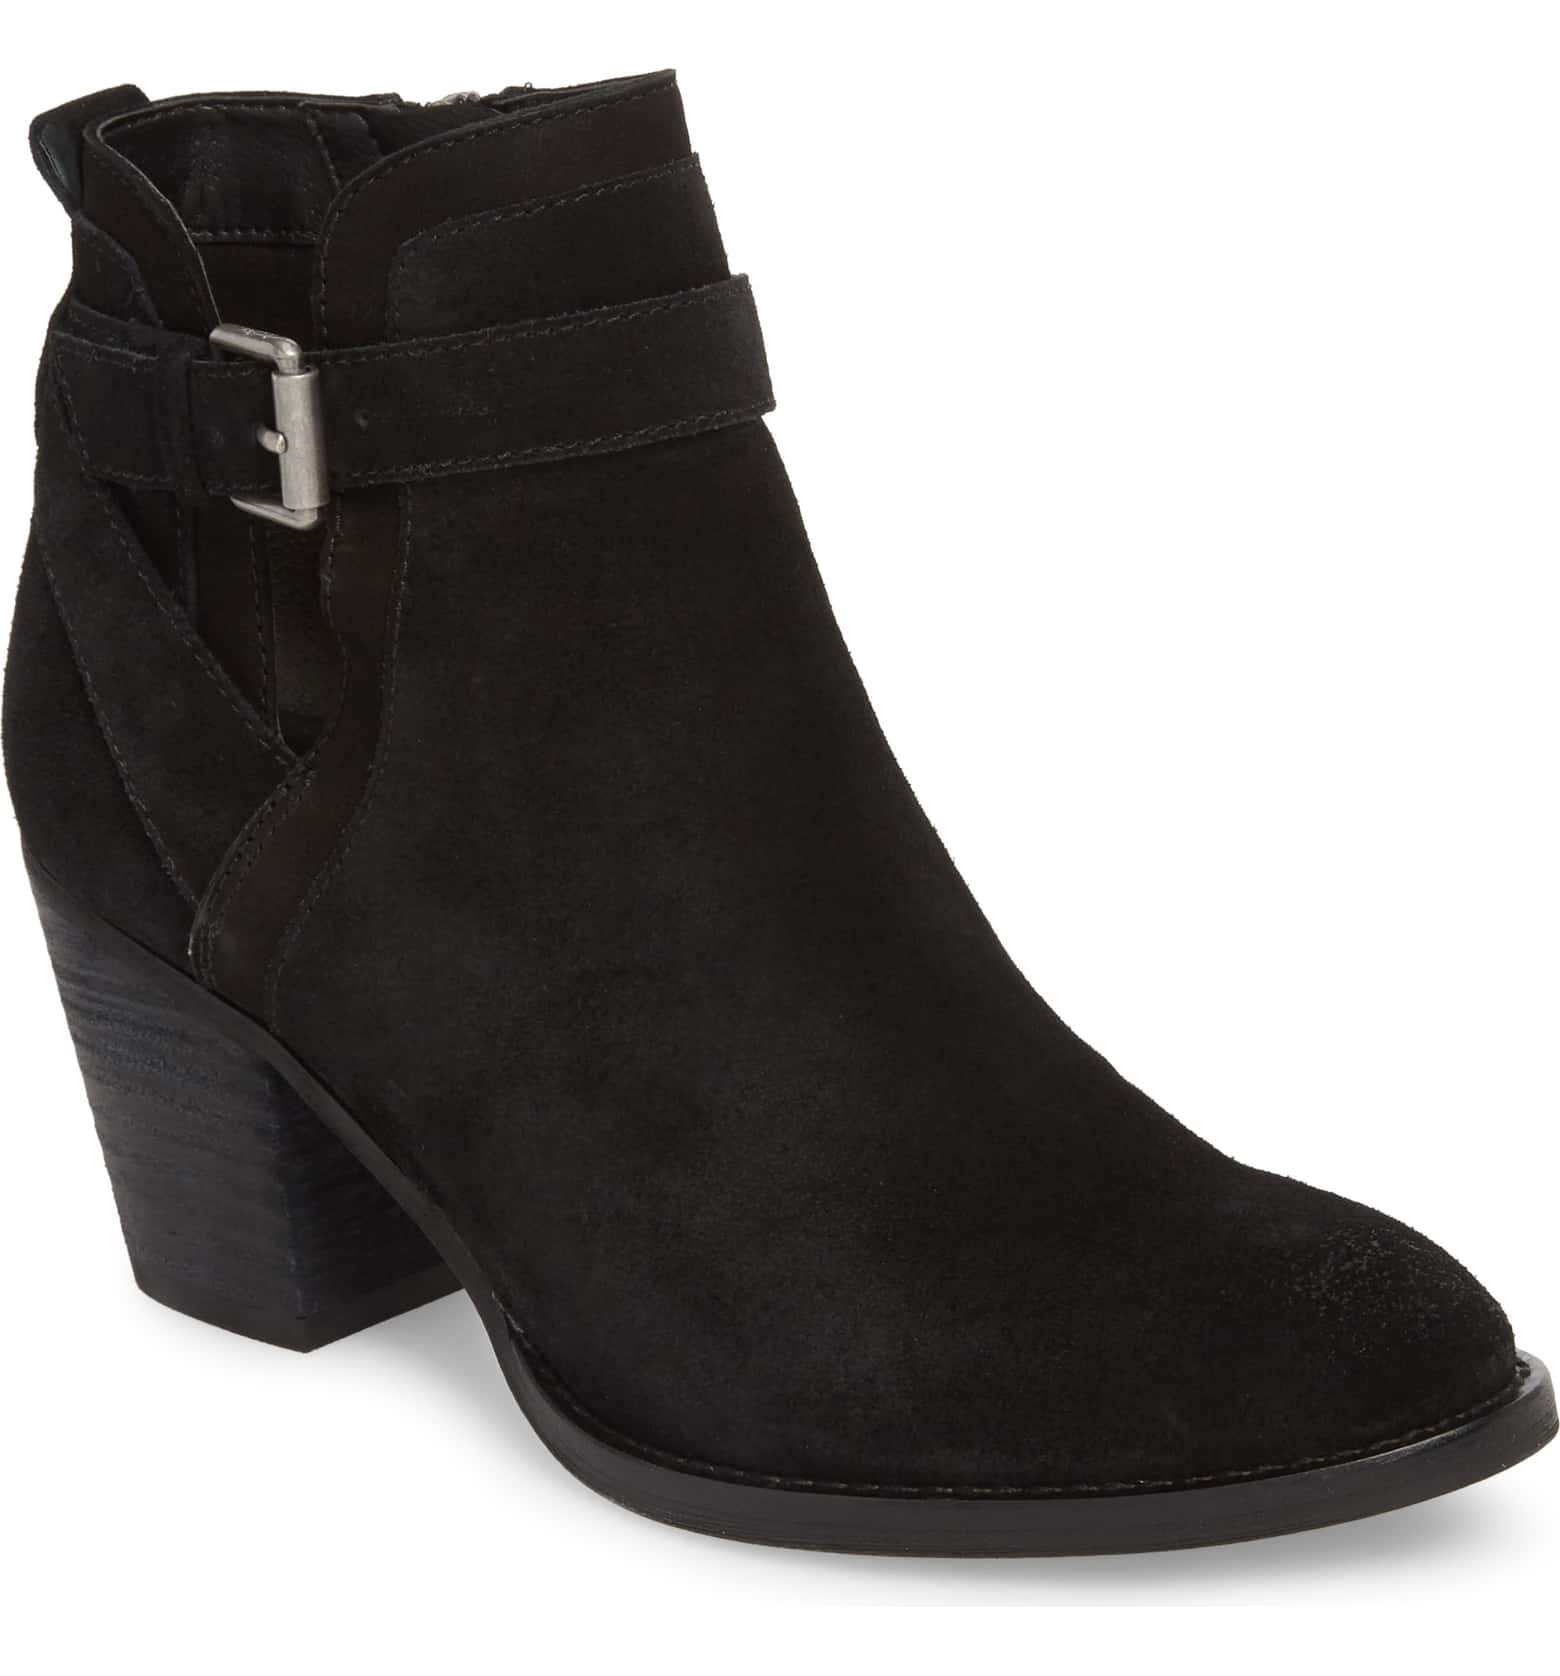 Fall Capsule Wardrobe - The Only 7 Pieces You Need - Black Bootie